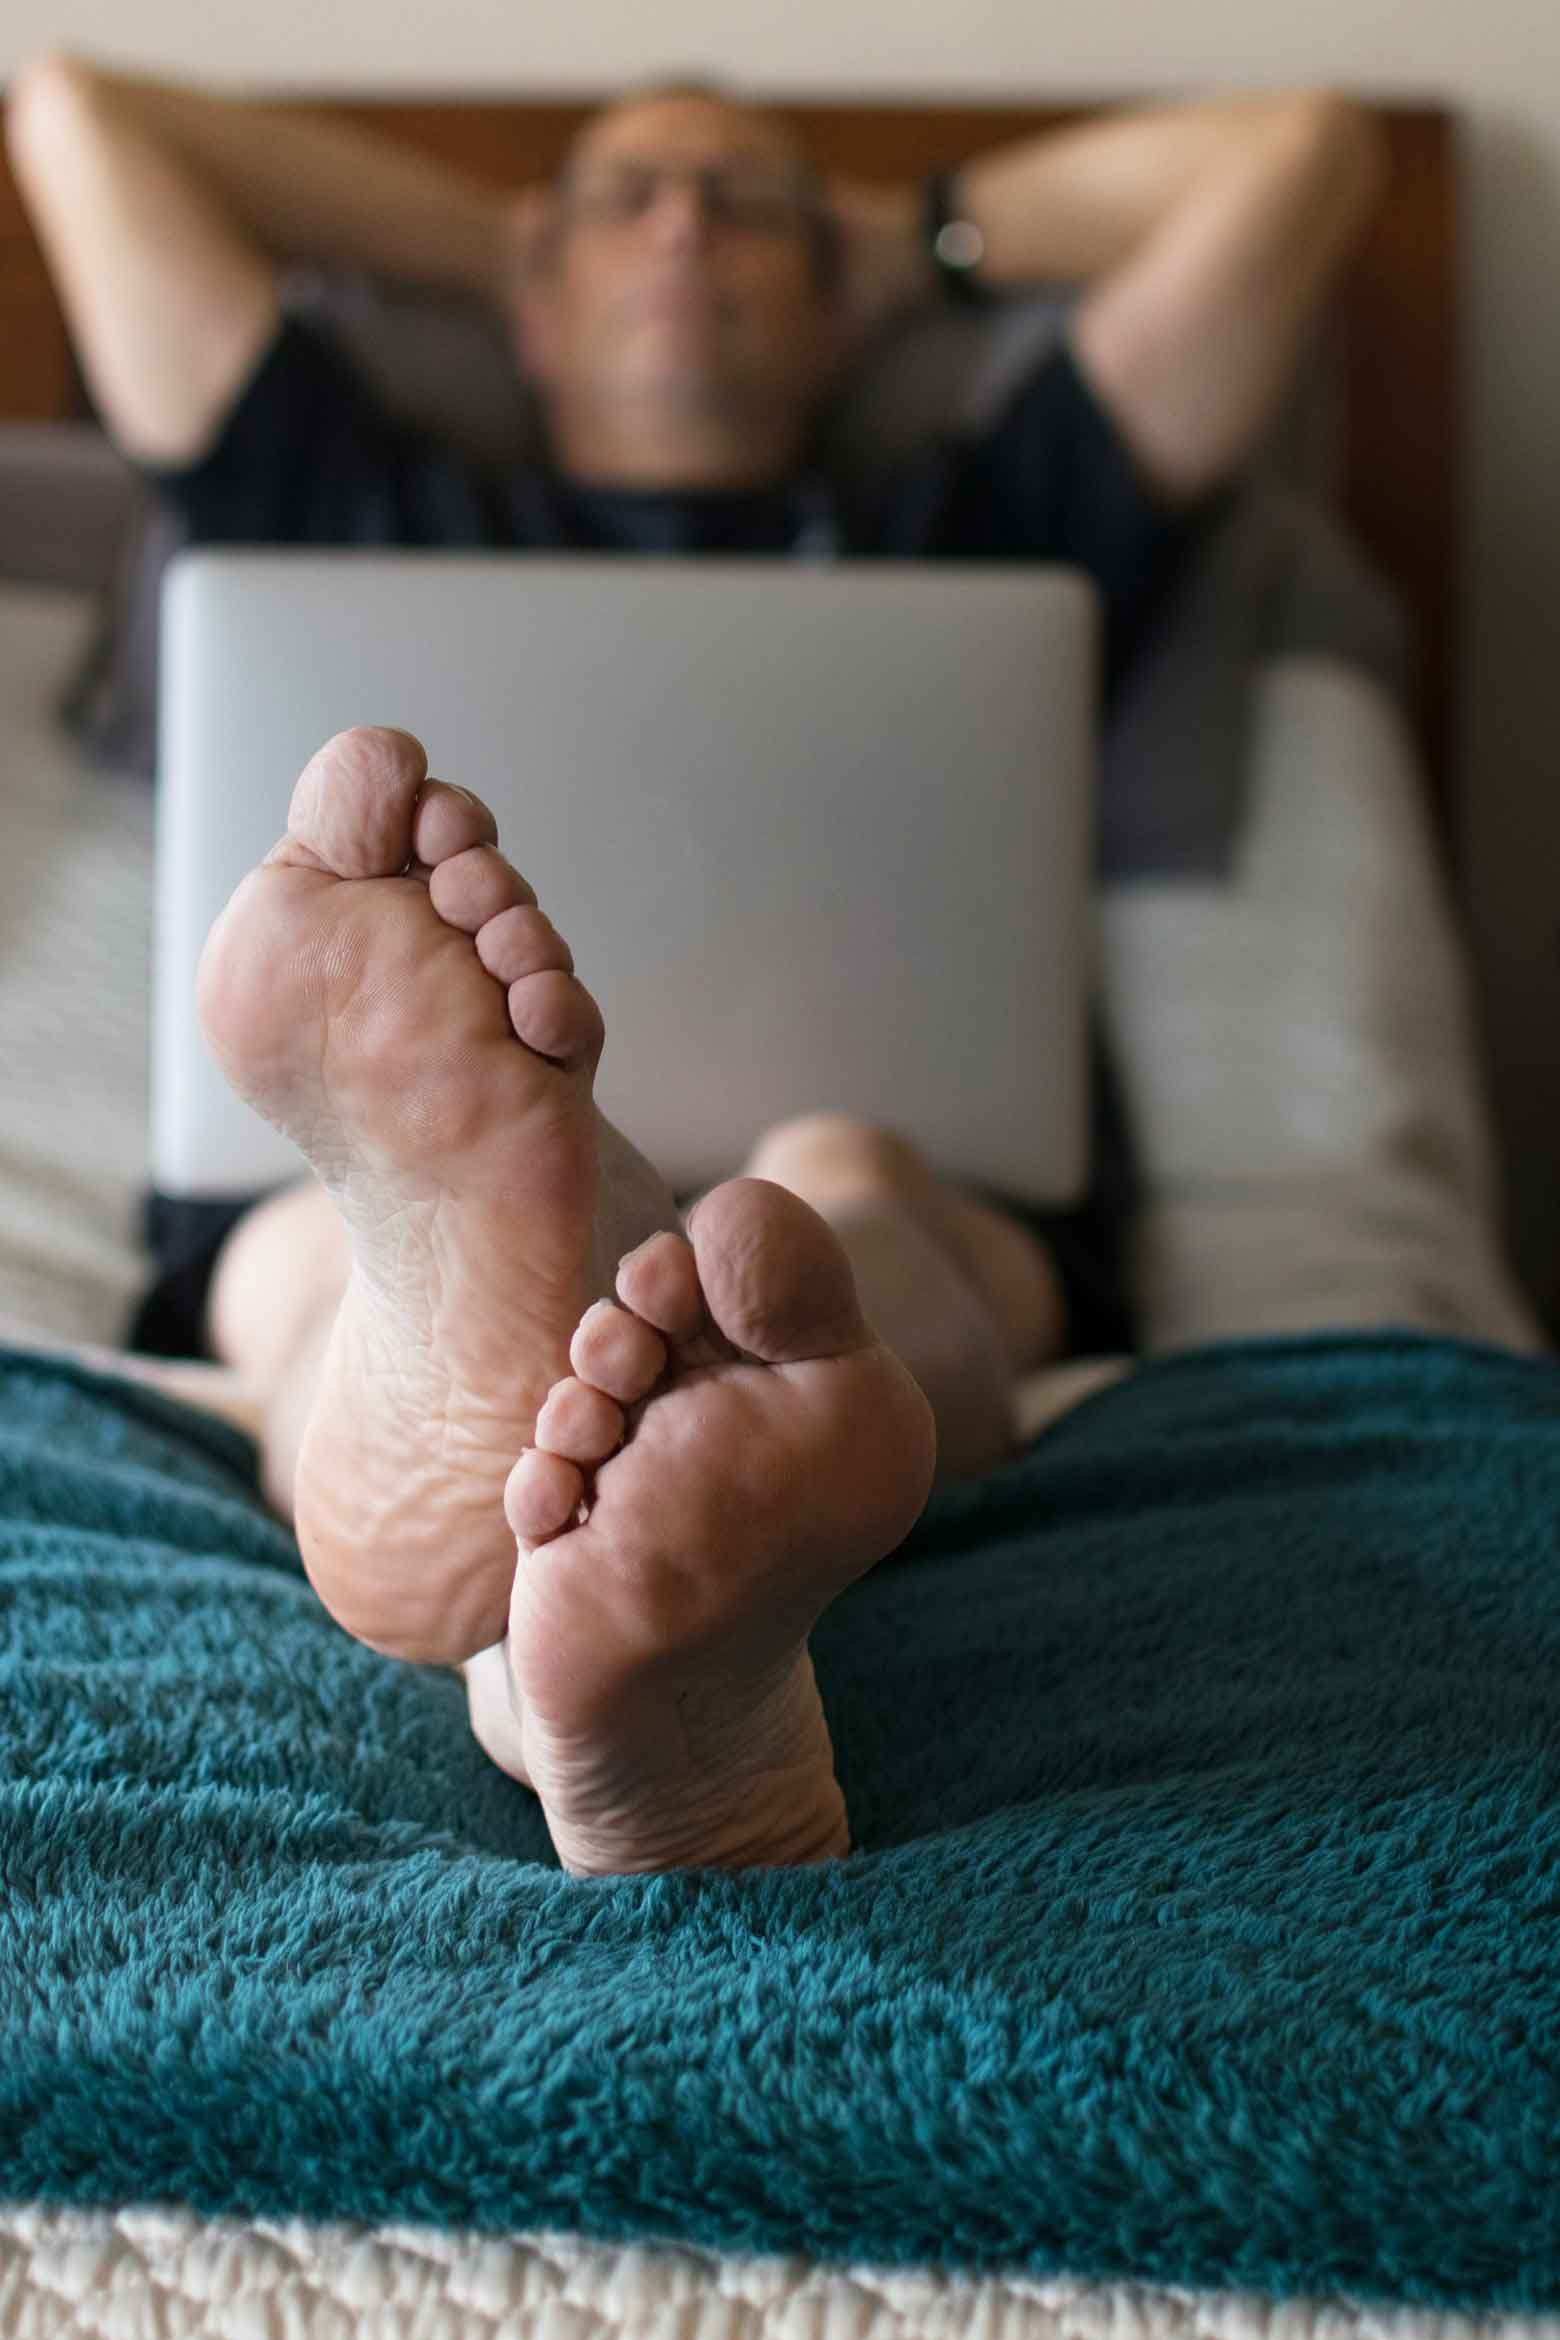 Feet and Laptop on a LulaaBED matress